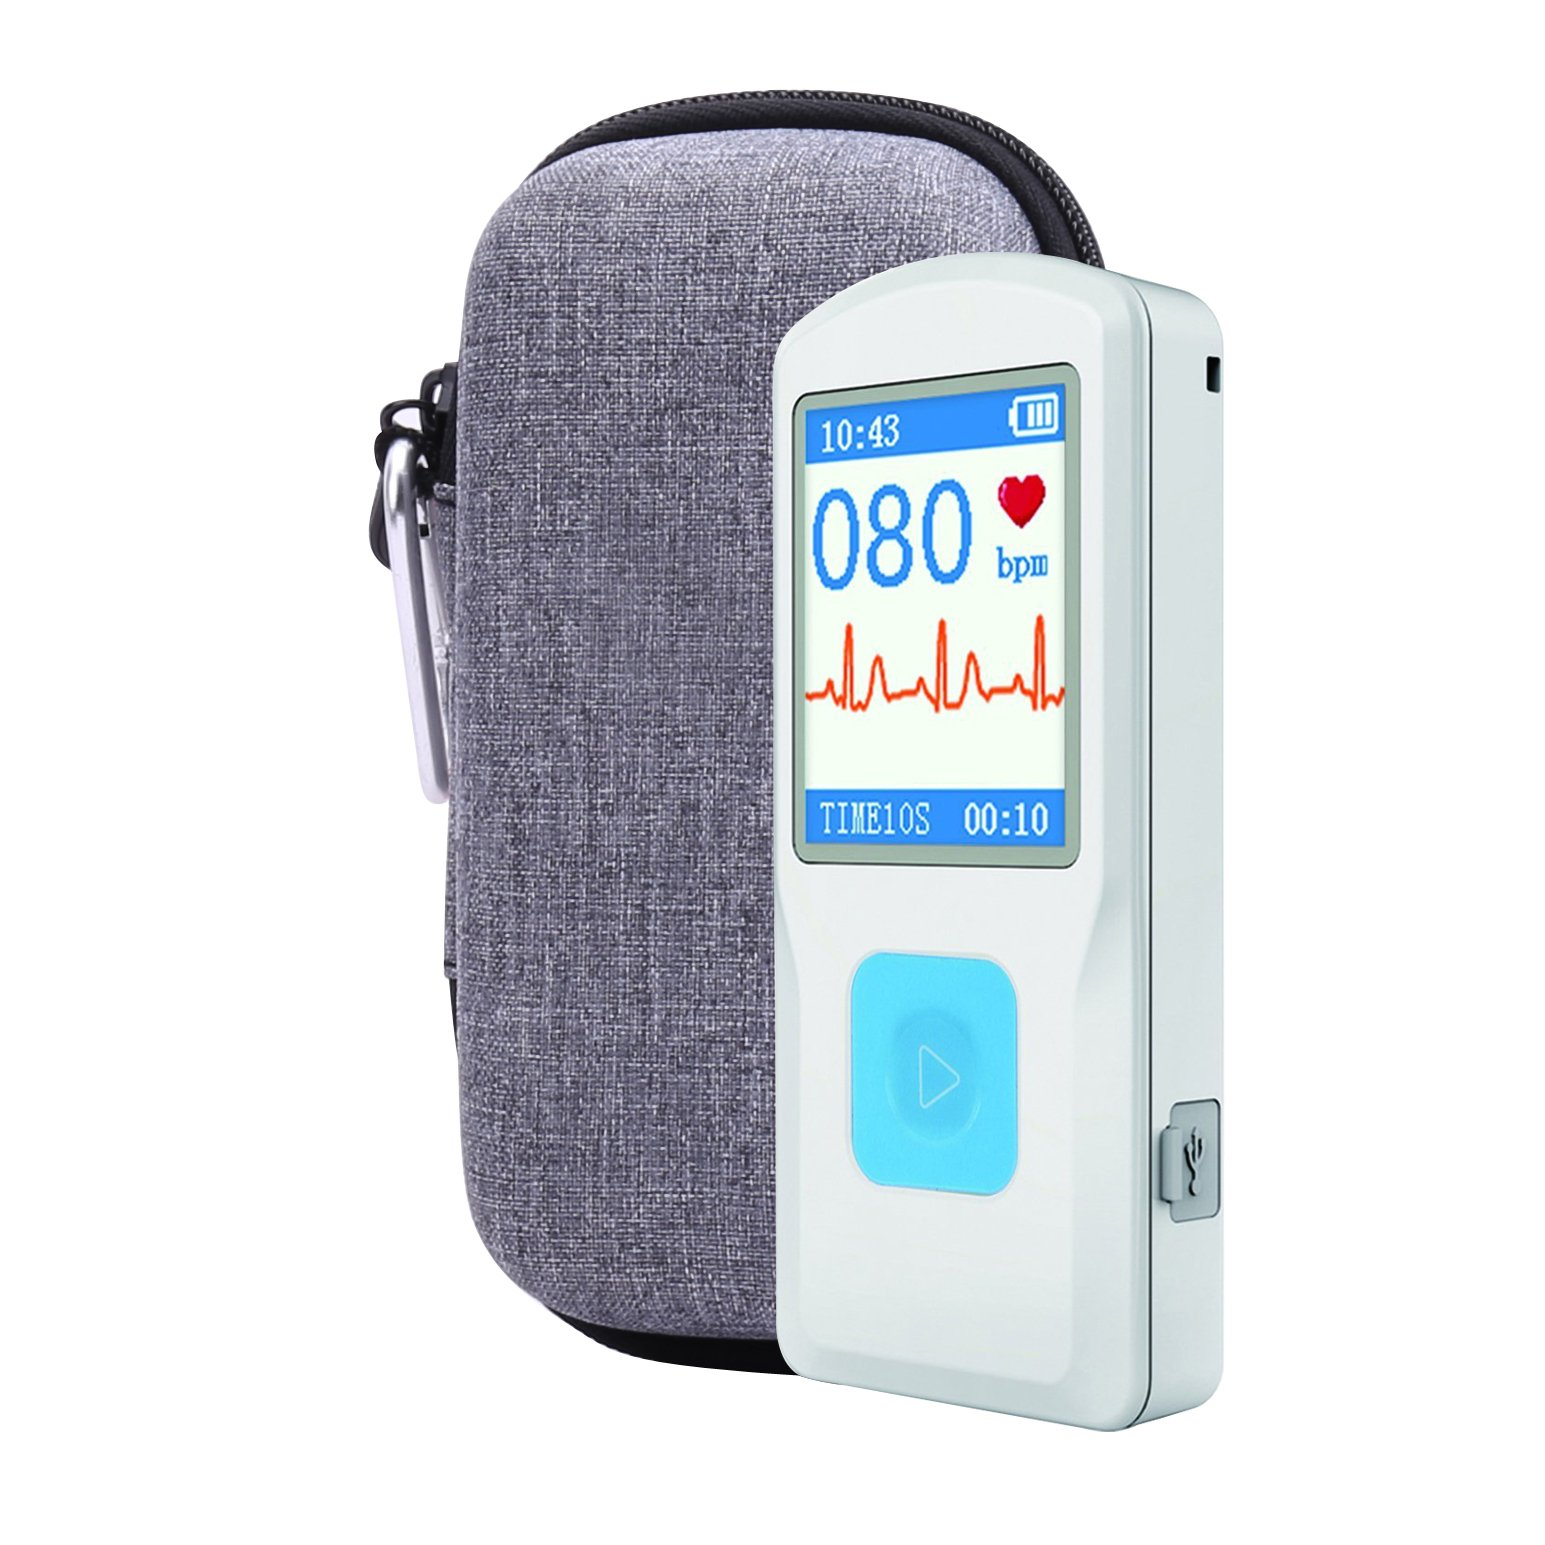 Hard Case for Emay Handheld ECG/EKG Monitor with Pill Organizer by Aenllosi